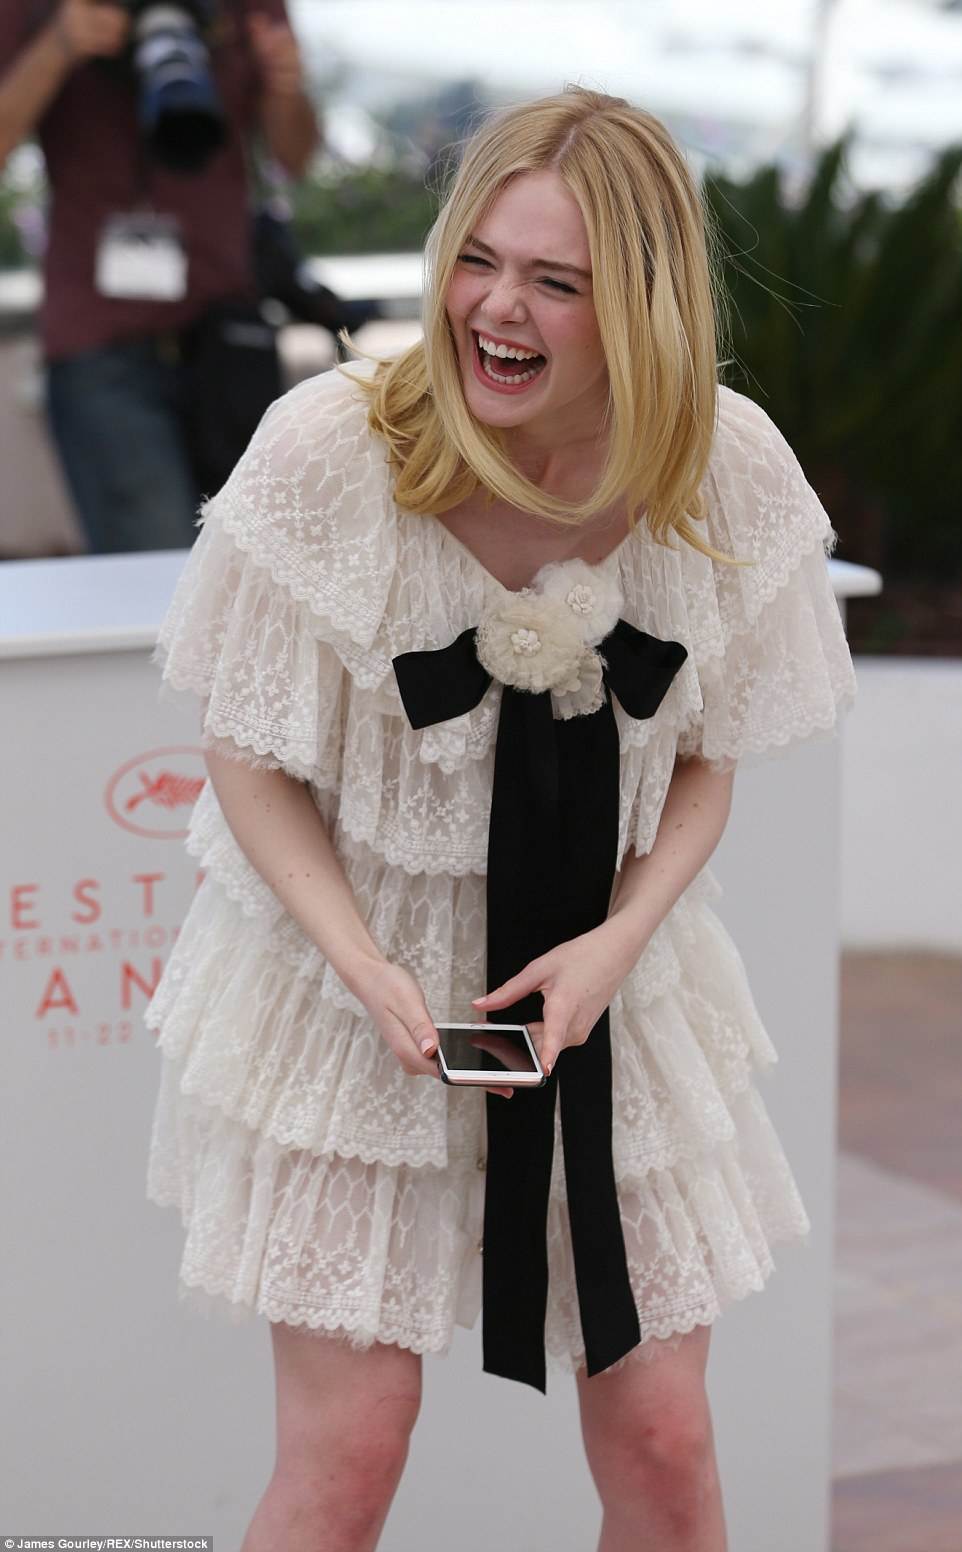 Getting the giggles: The 18-year-old actress was in high spirits as she helped promote the horror film, in which she plays a seemingly innocent aspiring model